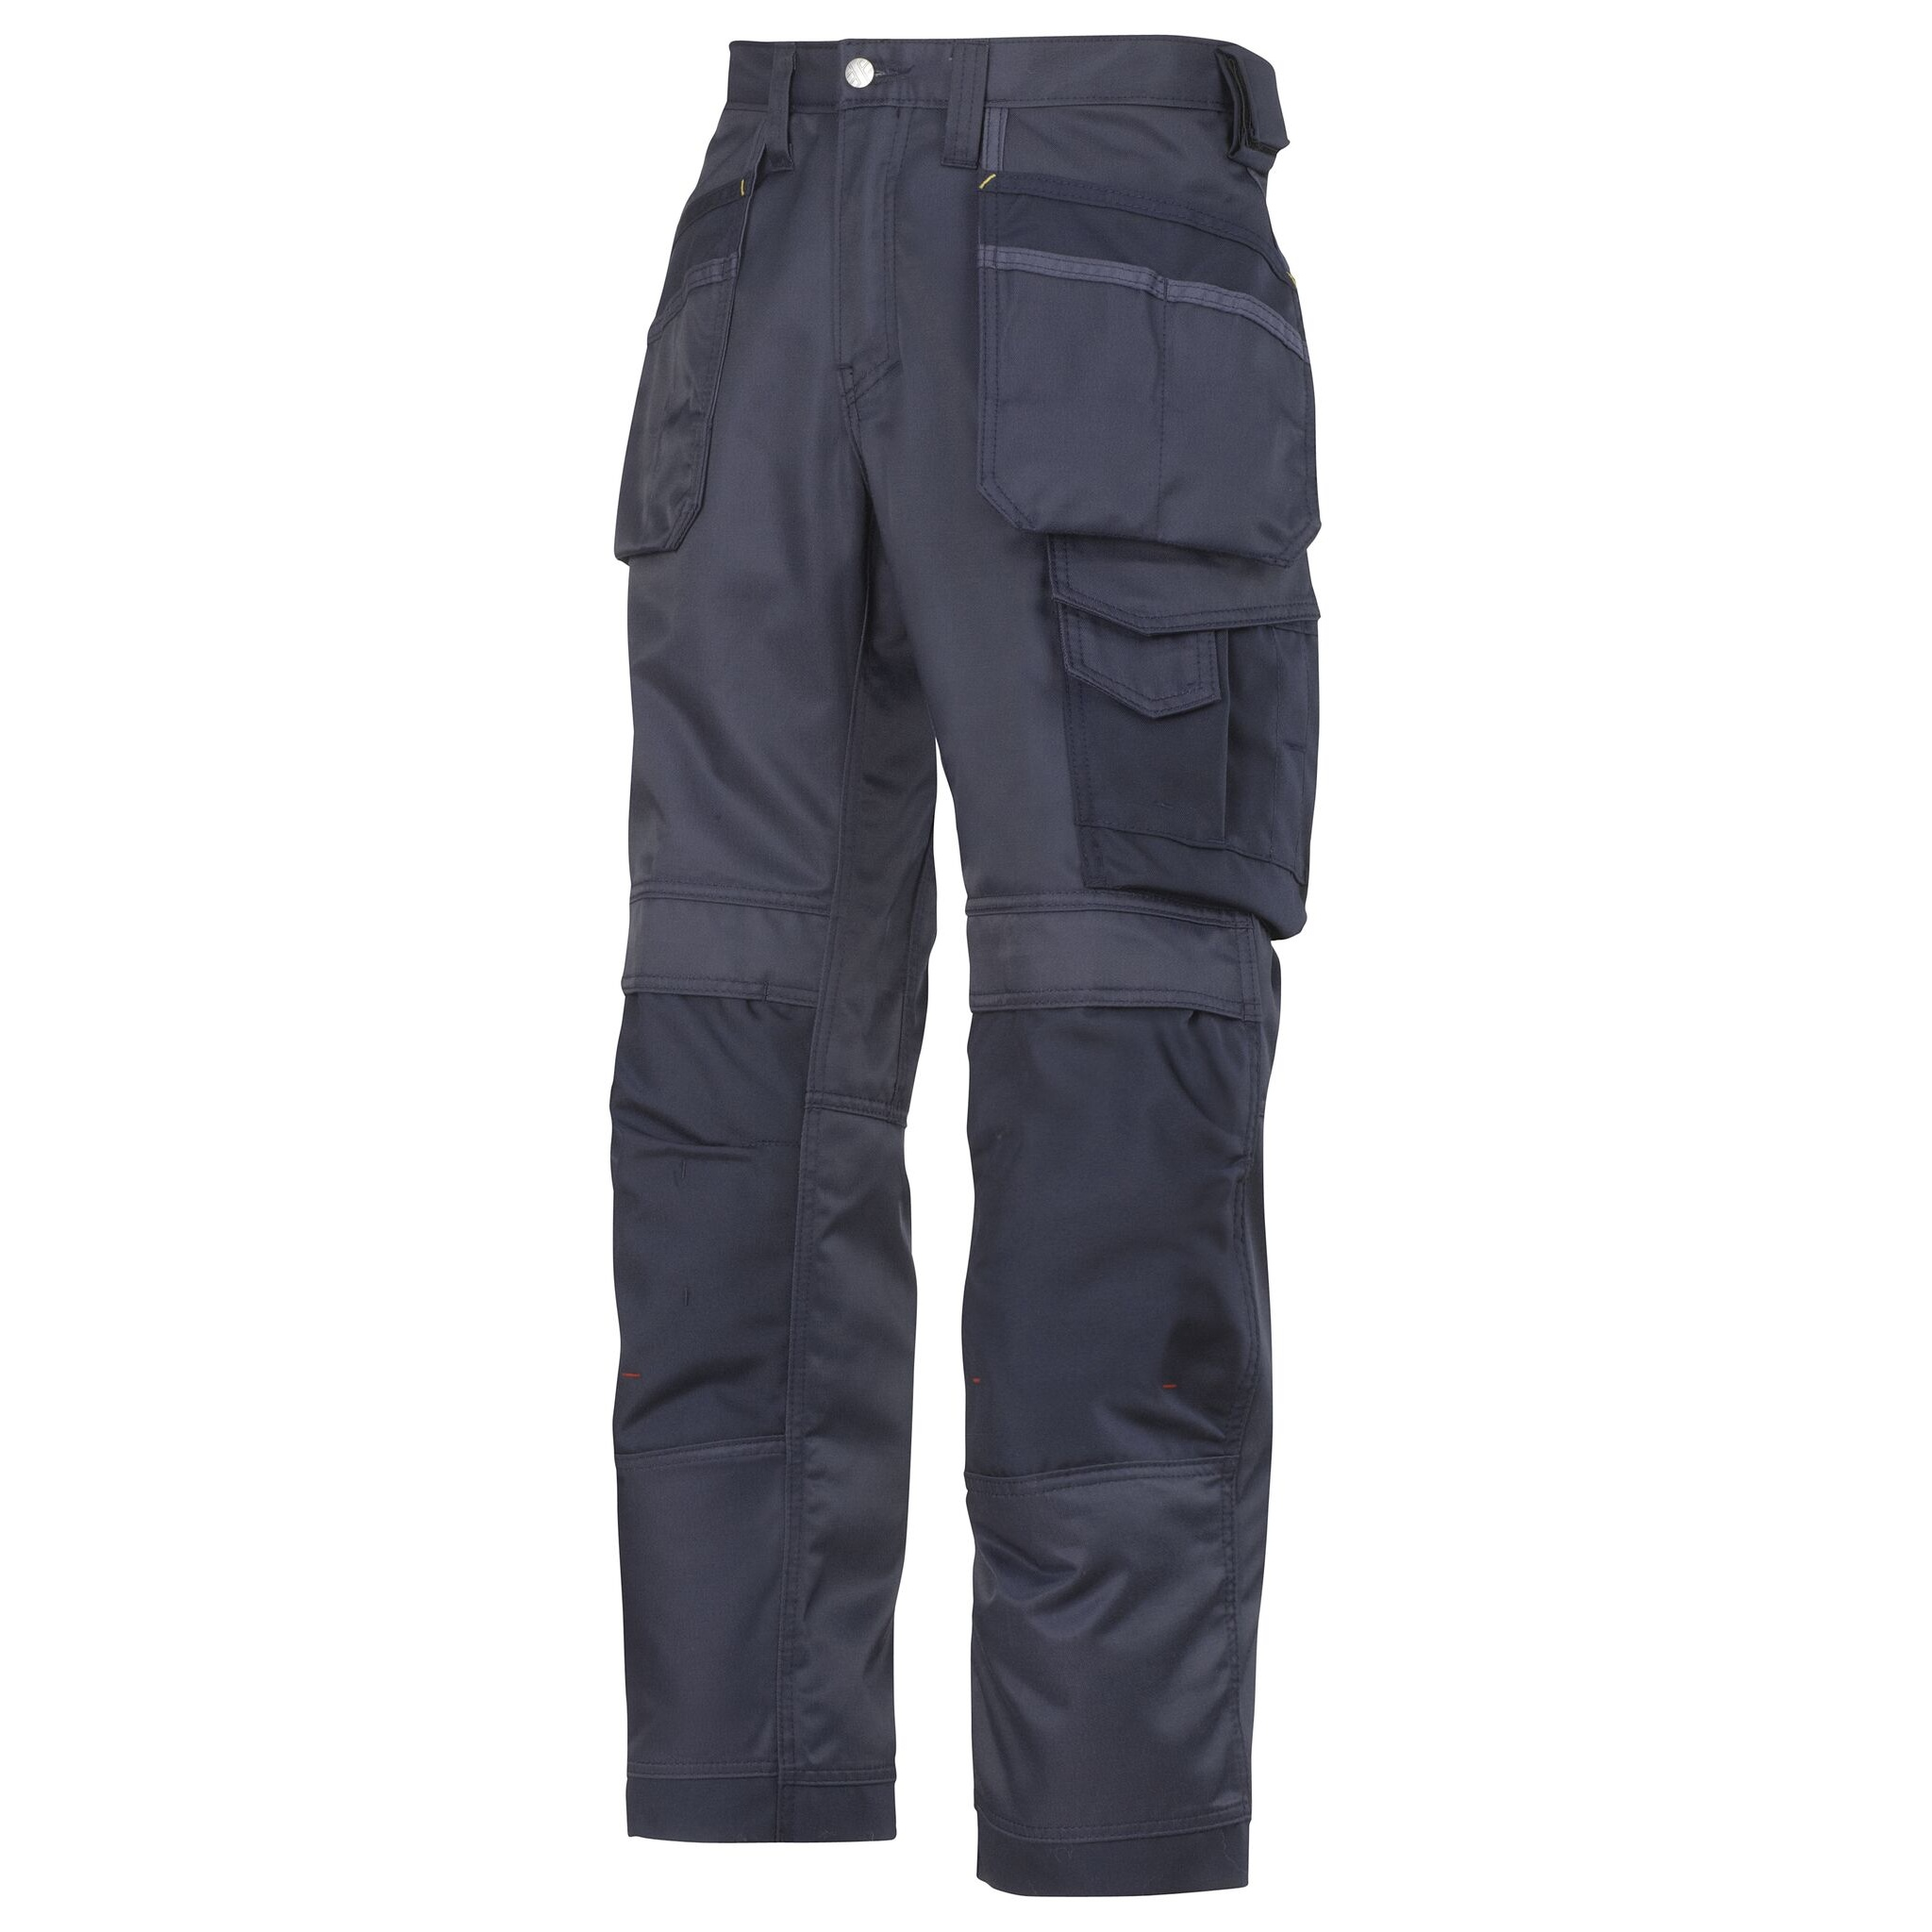 Snickers Mens DuraTwill Craftsmen Trousers (30S) (Navy/Black)